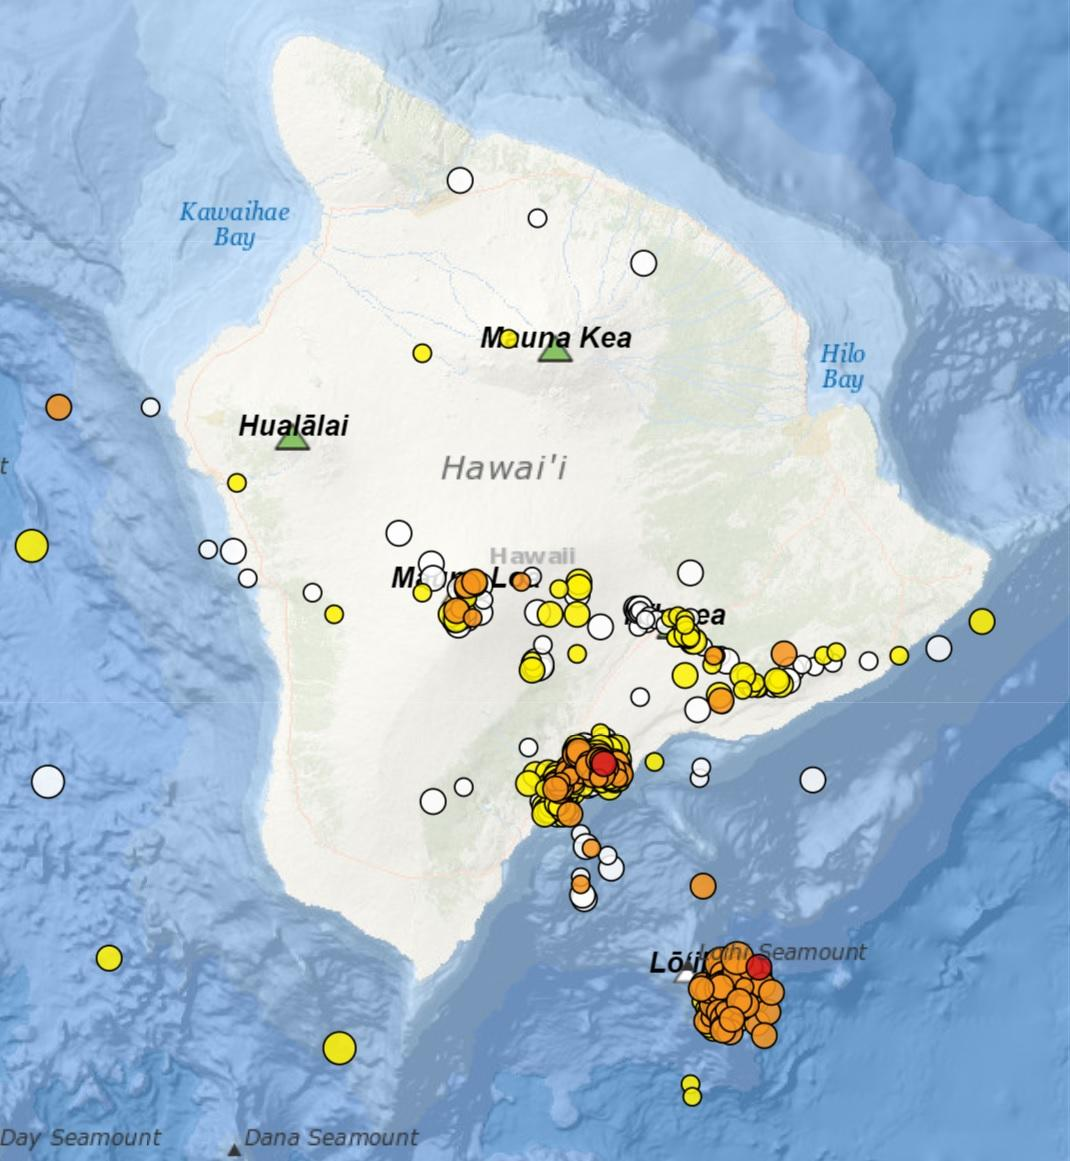 earthquake swarm loihi volcano hawaii, earthquake swarm loihi volcano hawaii map, earthquake swarm loihi volcano hawaii video